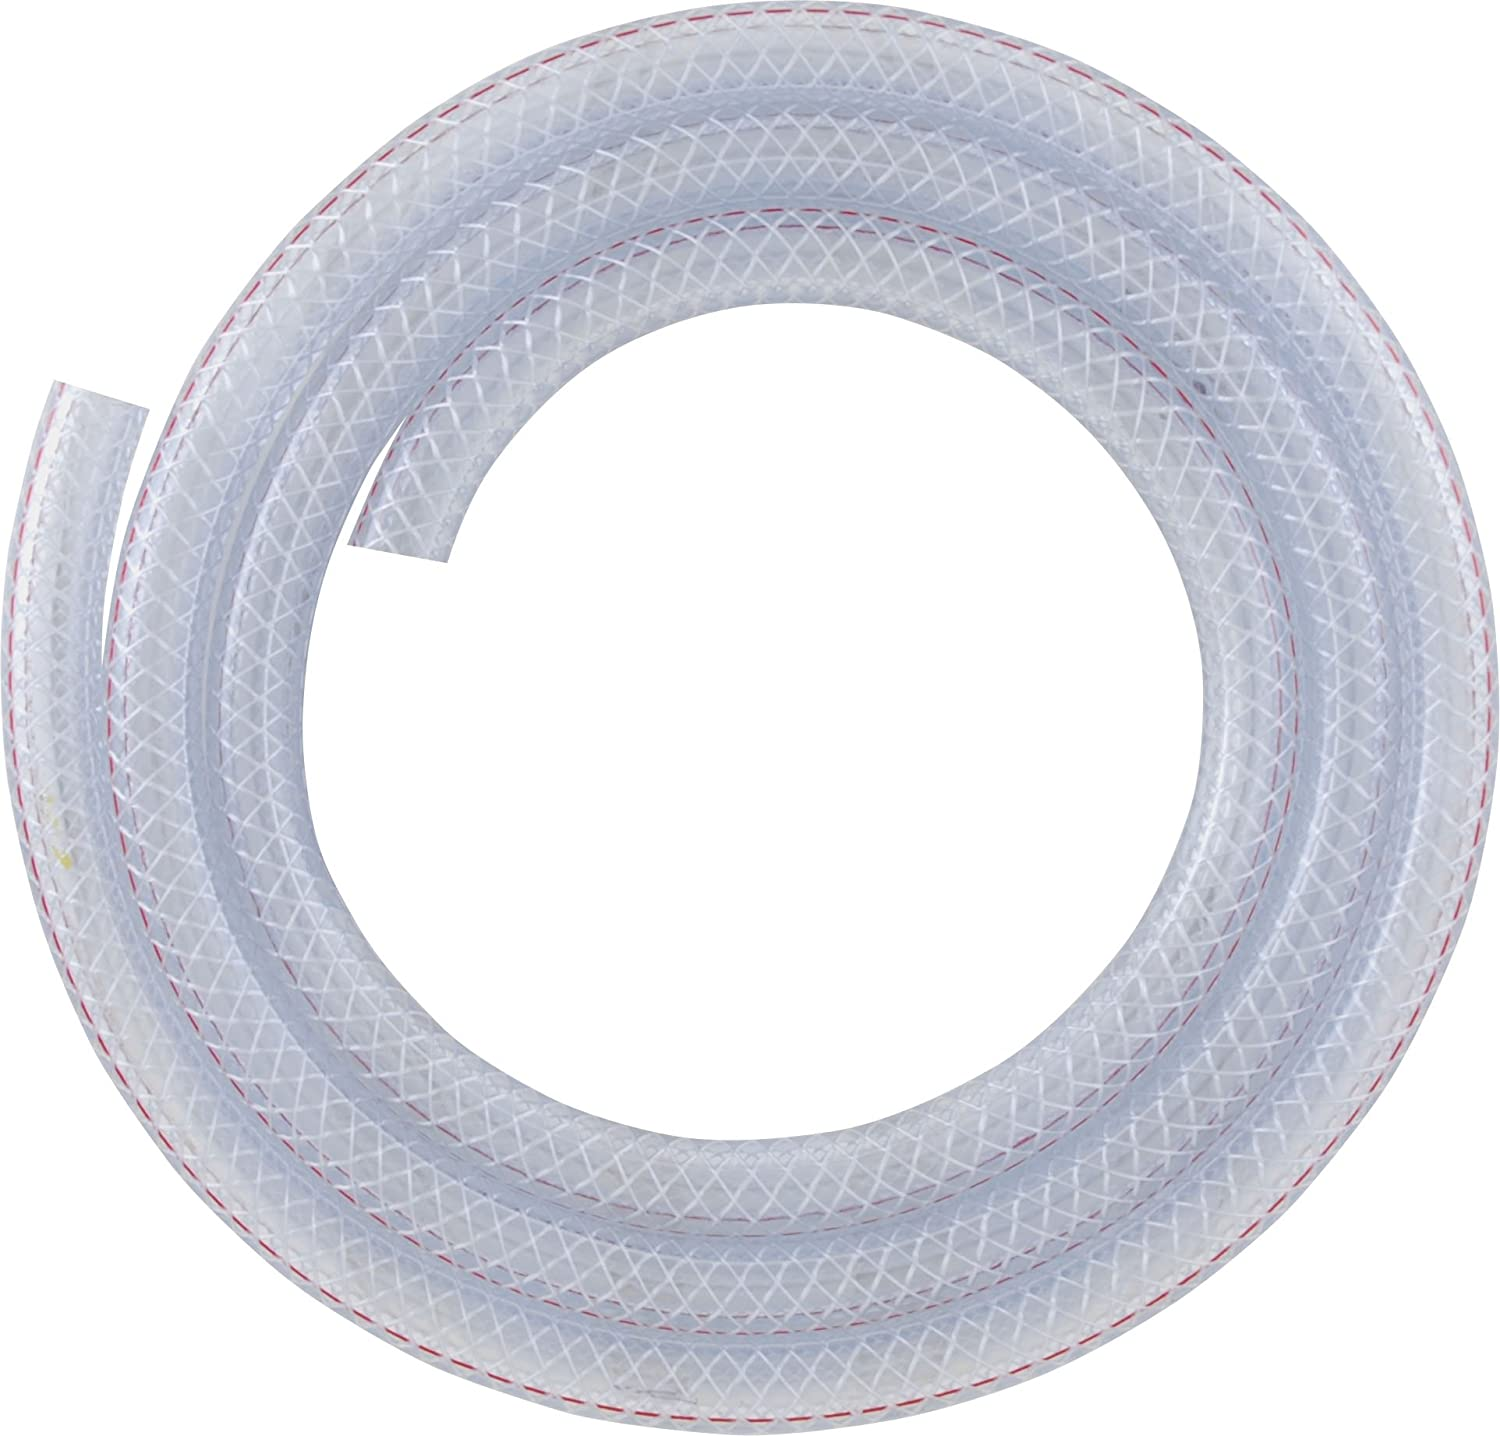 LDR Industries 516 B3810 Reinforced Clear Braided PVC Vinyl Tubing, Flexible Hose, Heavy Duty Hose, 5/8-Inch ID X 7/8-Inch OD, 10-Feet, Clear Finish